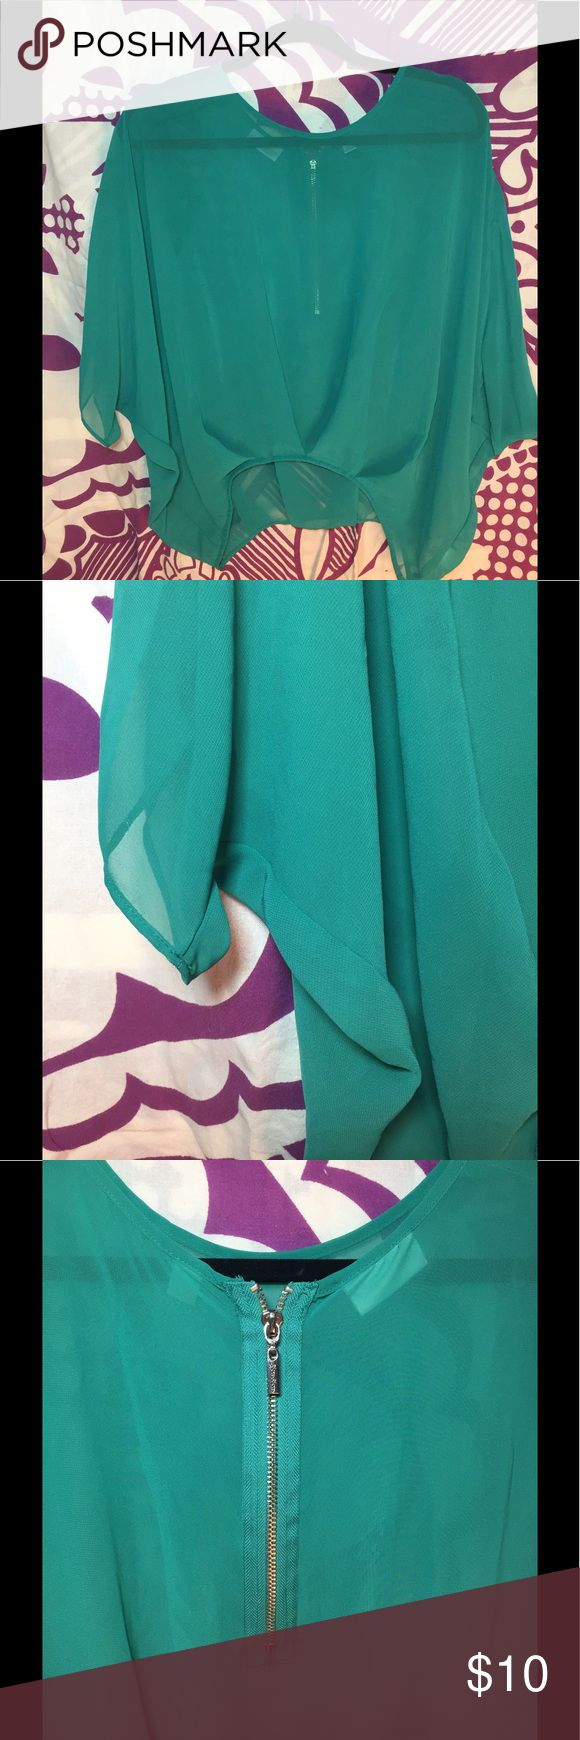 Sheer teal blouse! Sheer teal blouse, with an exposed zipper in the back that adds interest. The size says xs but could also fit a small. Tops Blouses